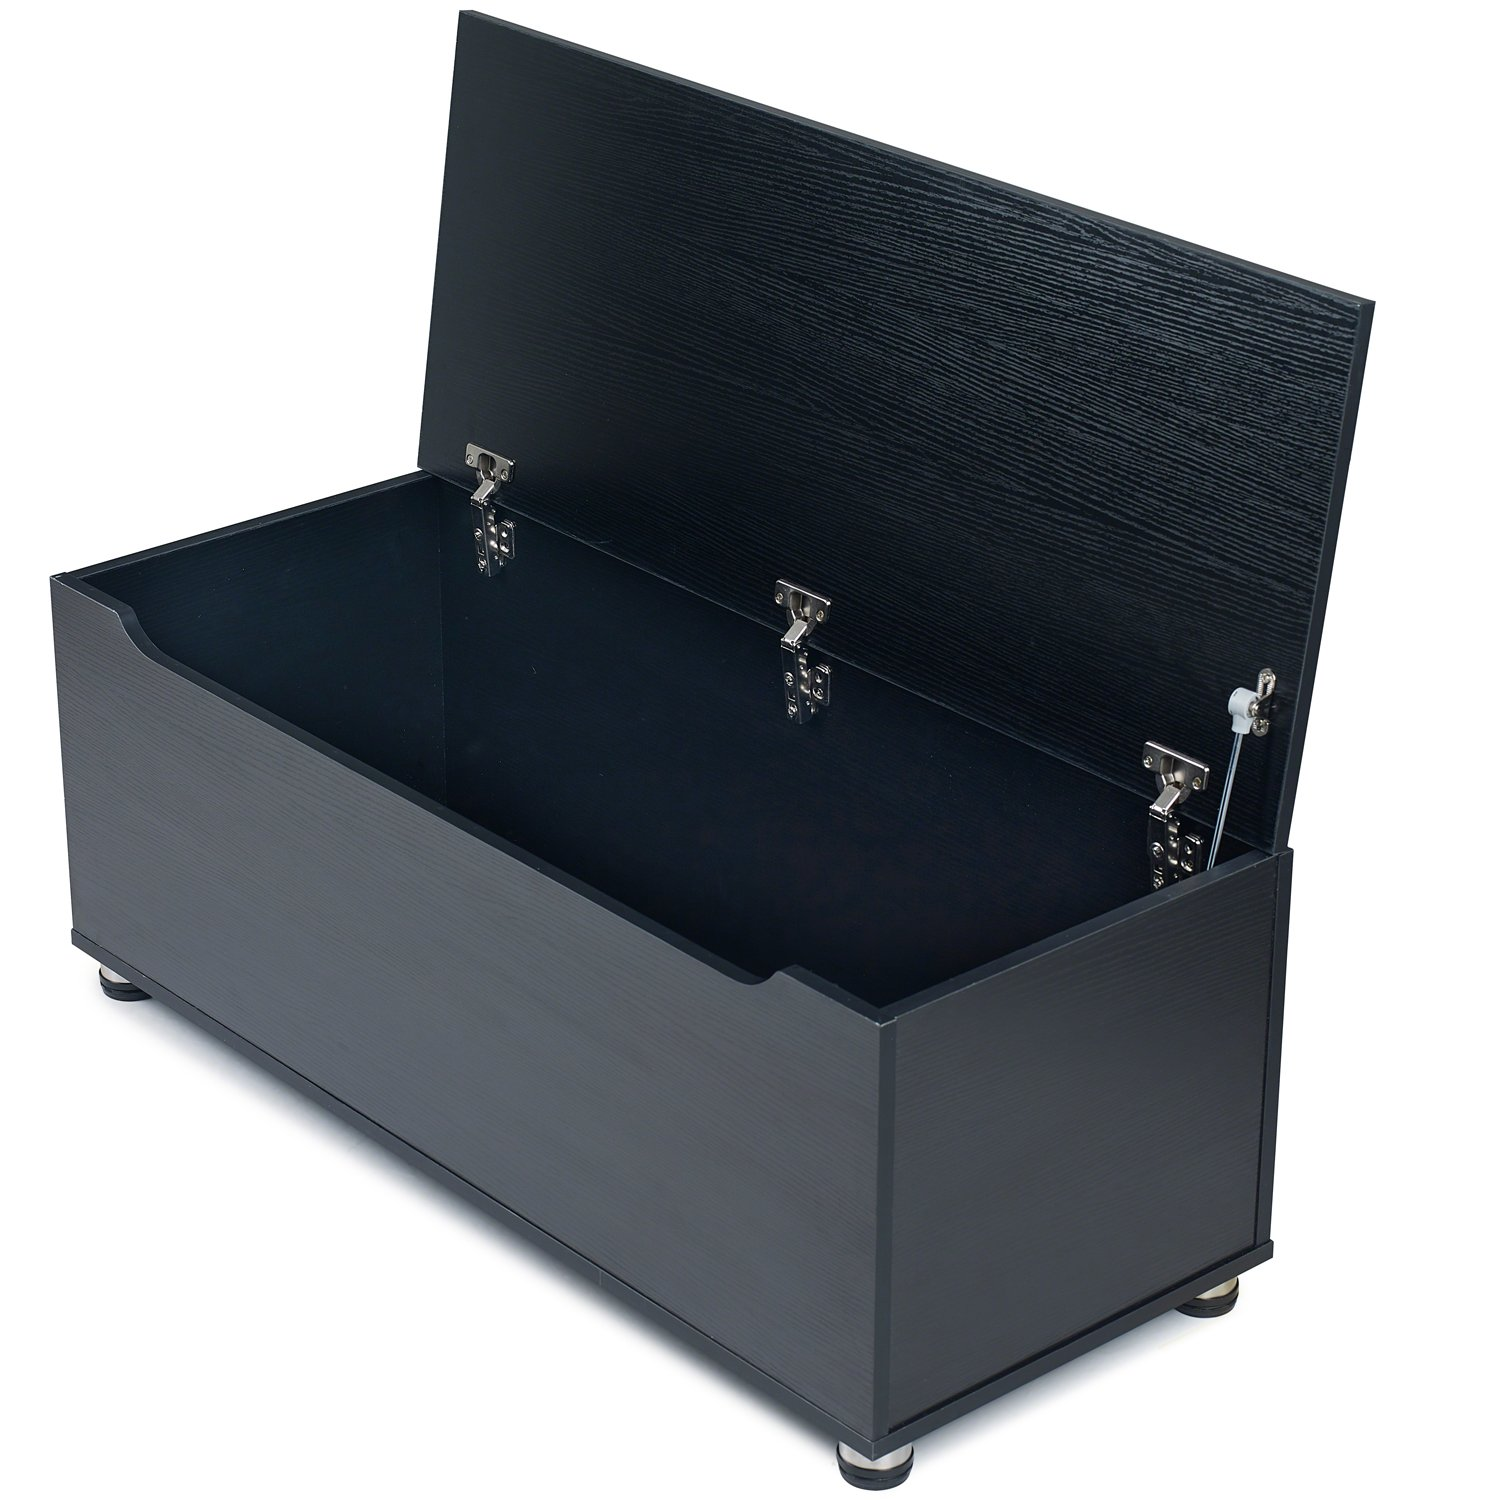 Laura James Storage toy chest box - large - Unique Gas Lift Hinge(Black) AGTC Ltd